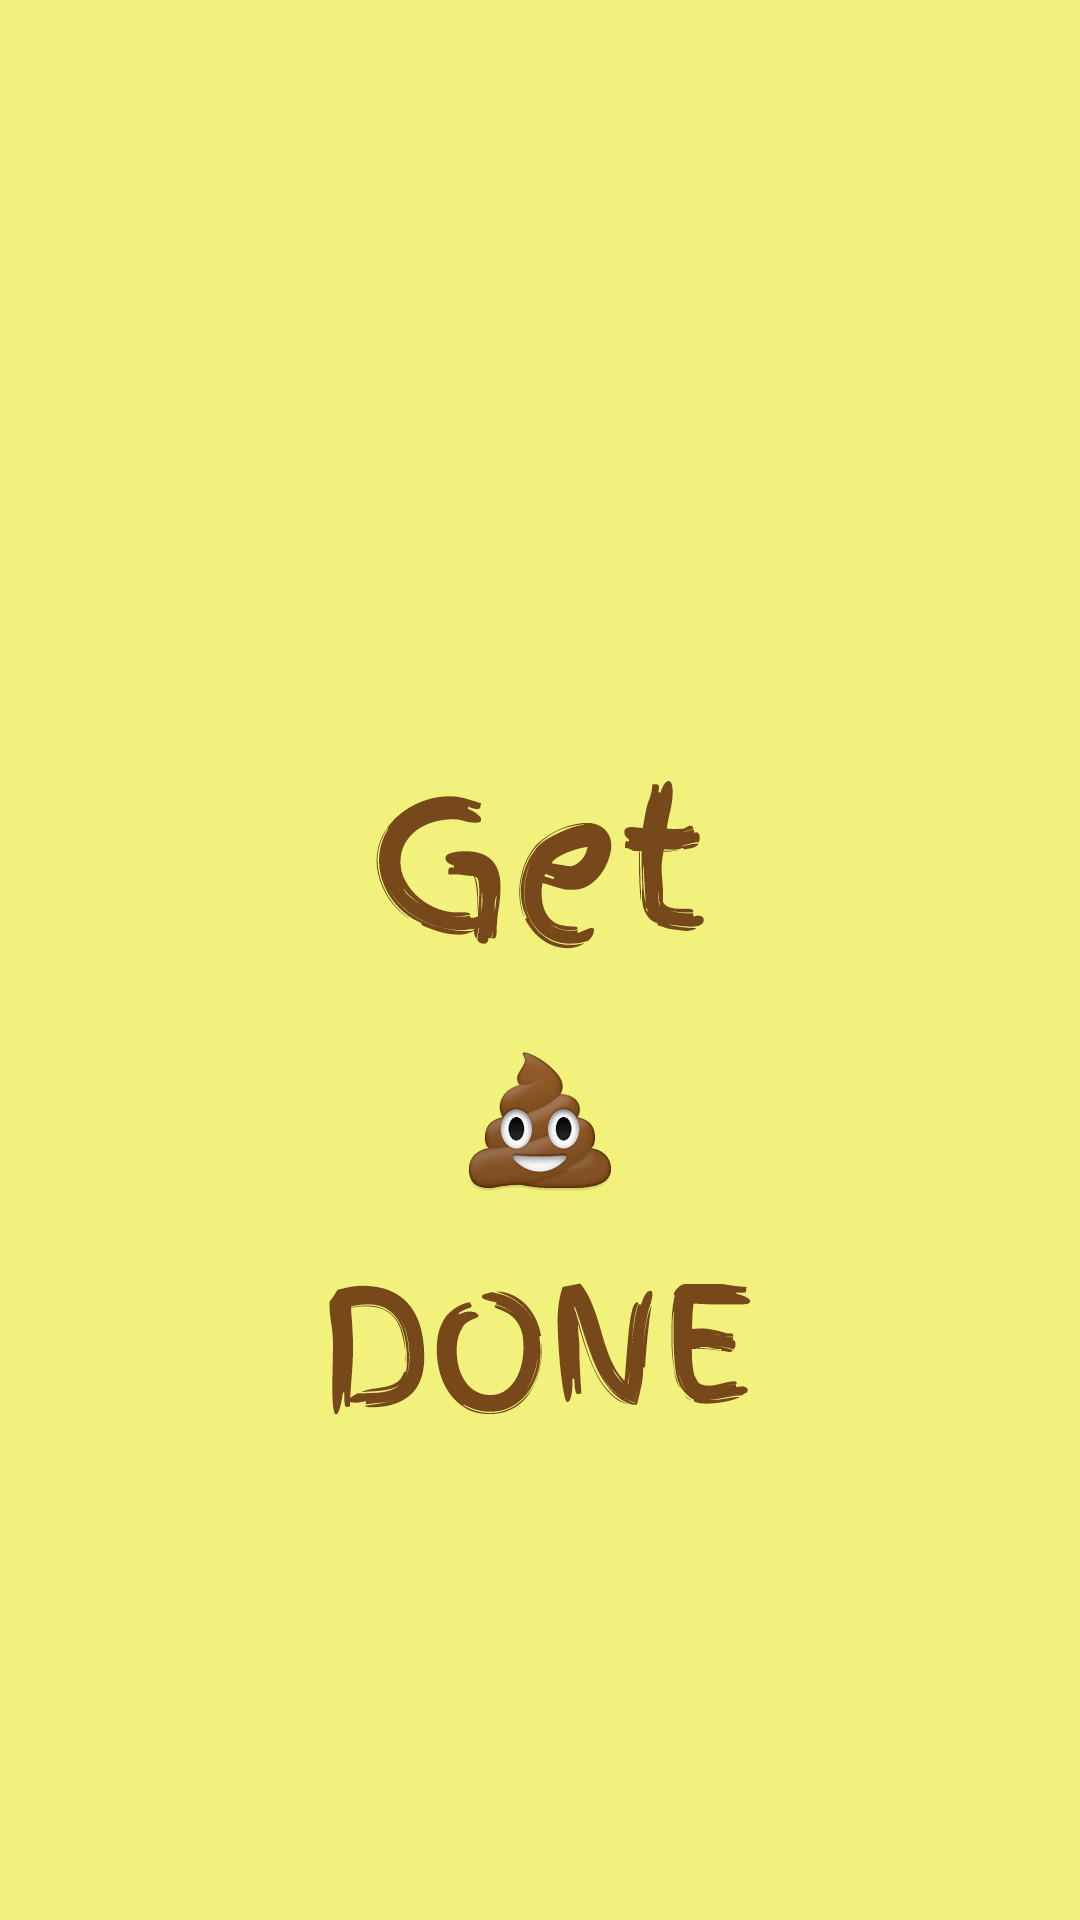 Get Shit Done iPhone 6 Plus HD Wallpaper – https://freebestpicture.com